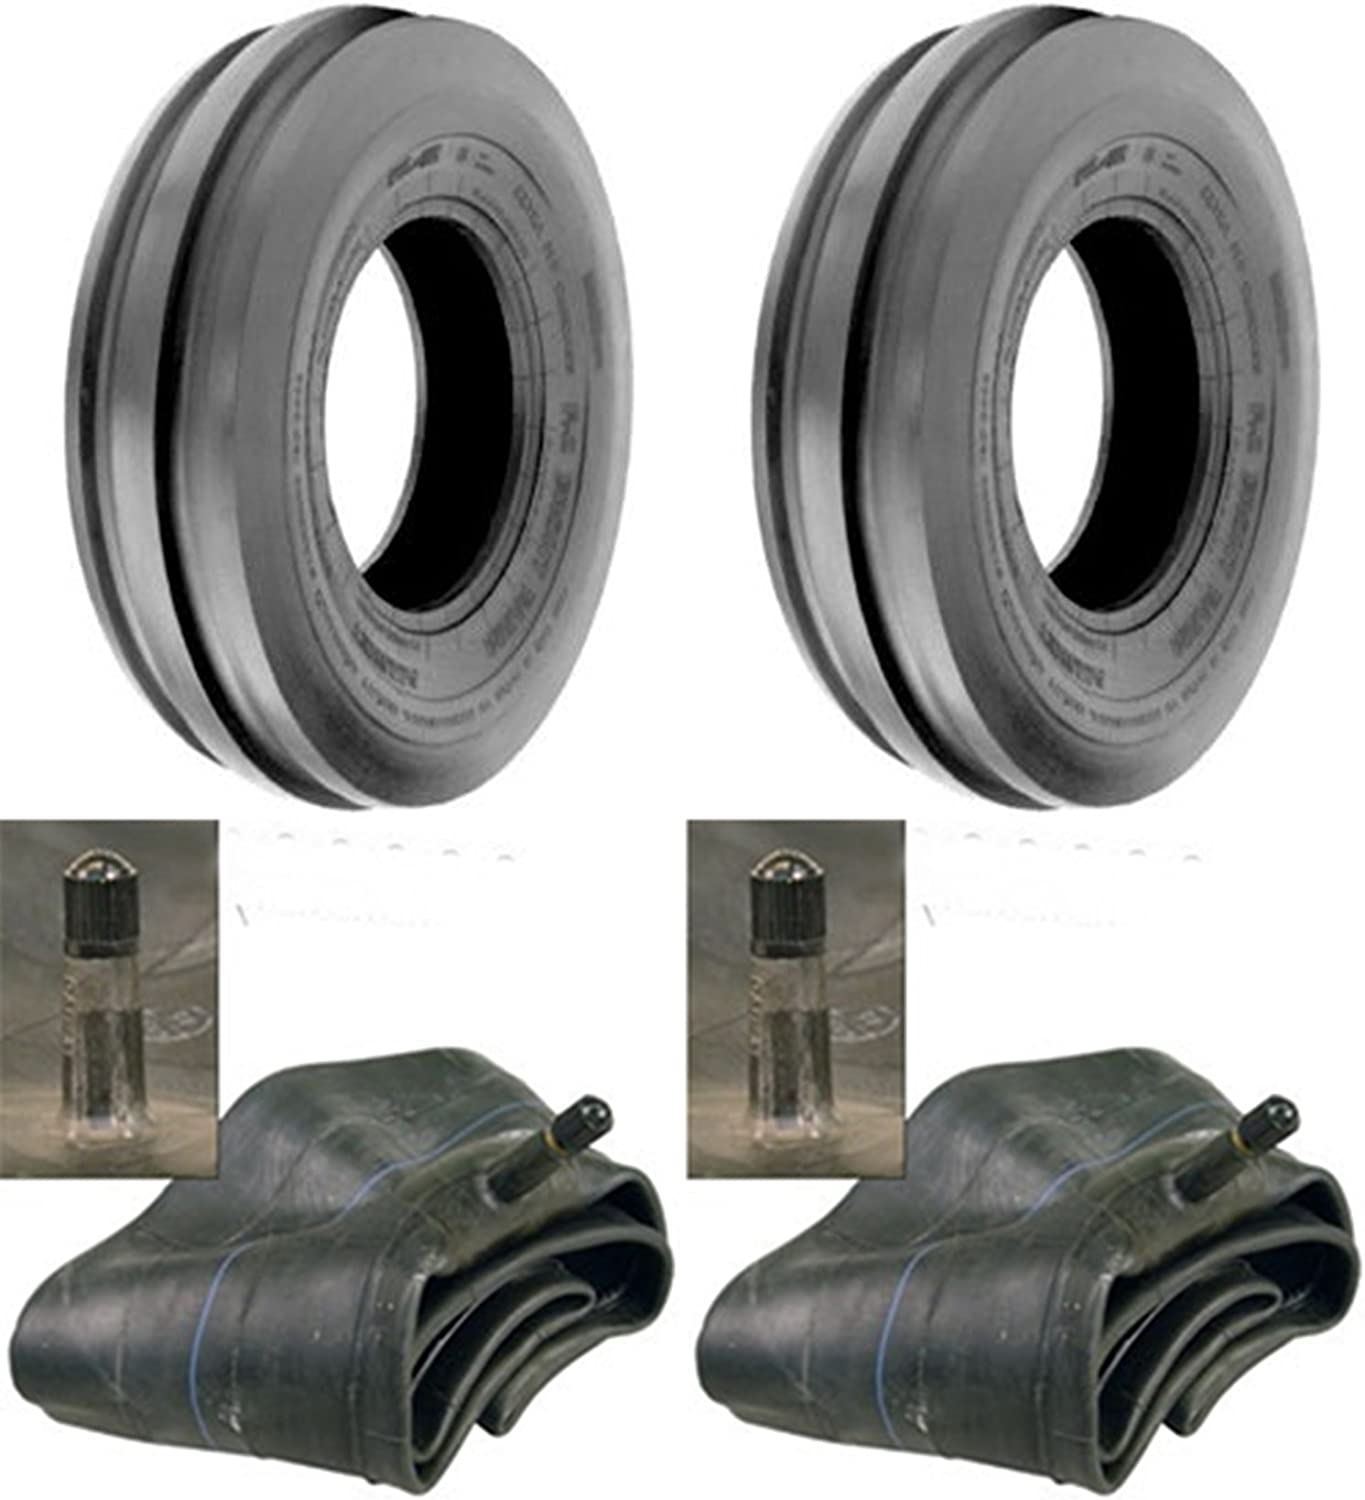 LOT of sale Two 2 Sale price 4.00-15 4.00x15 with Tires Rib Tubes 3 Tri